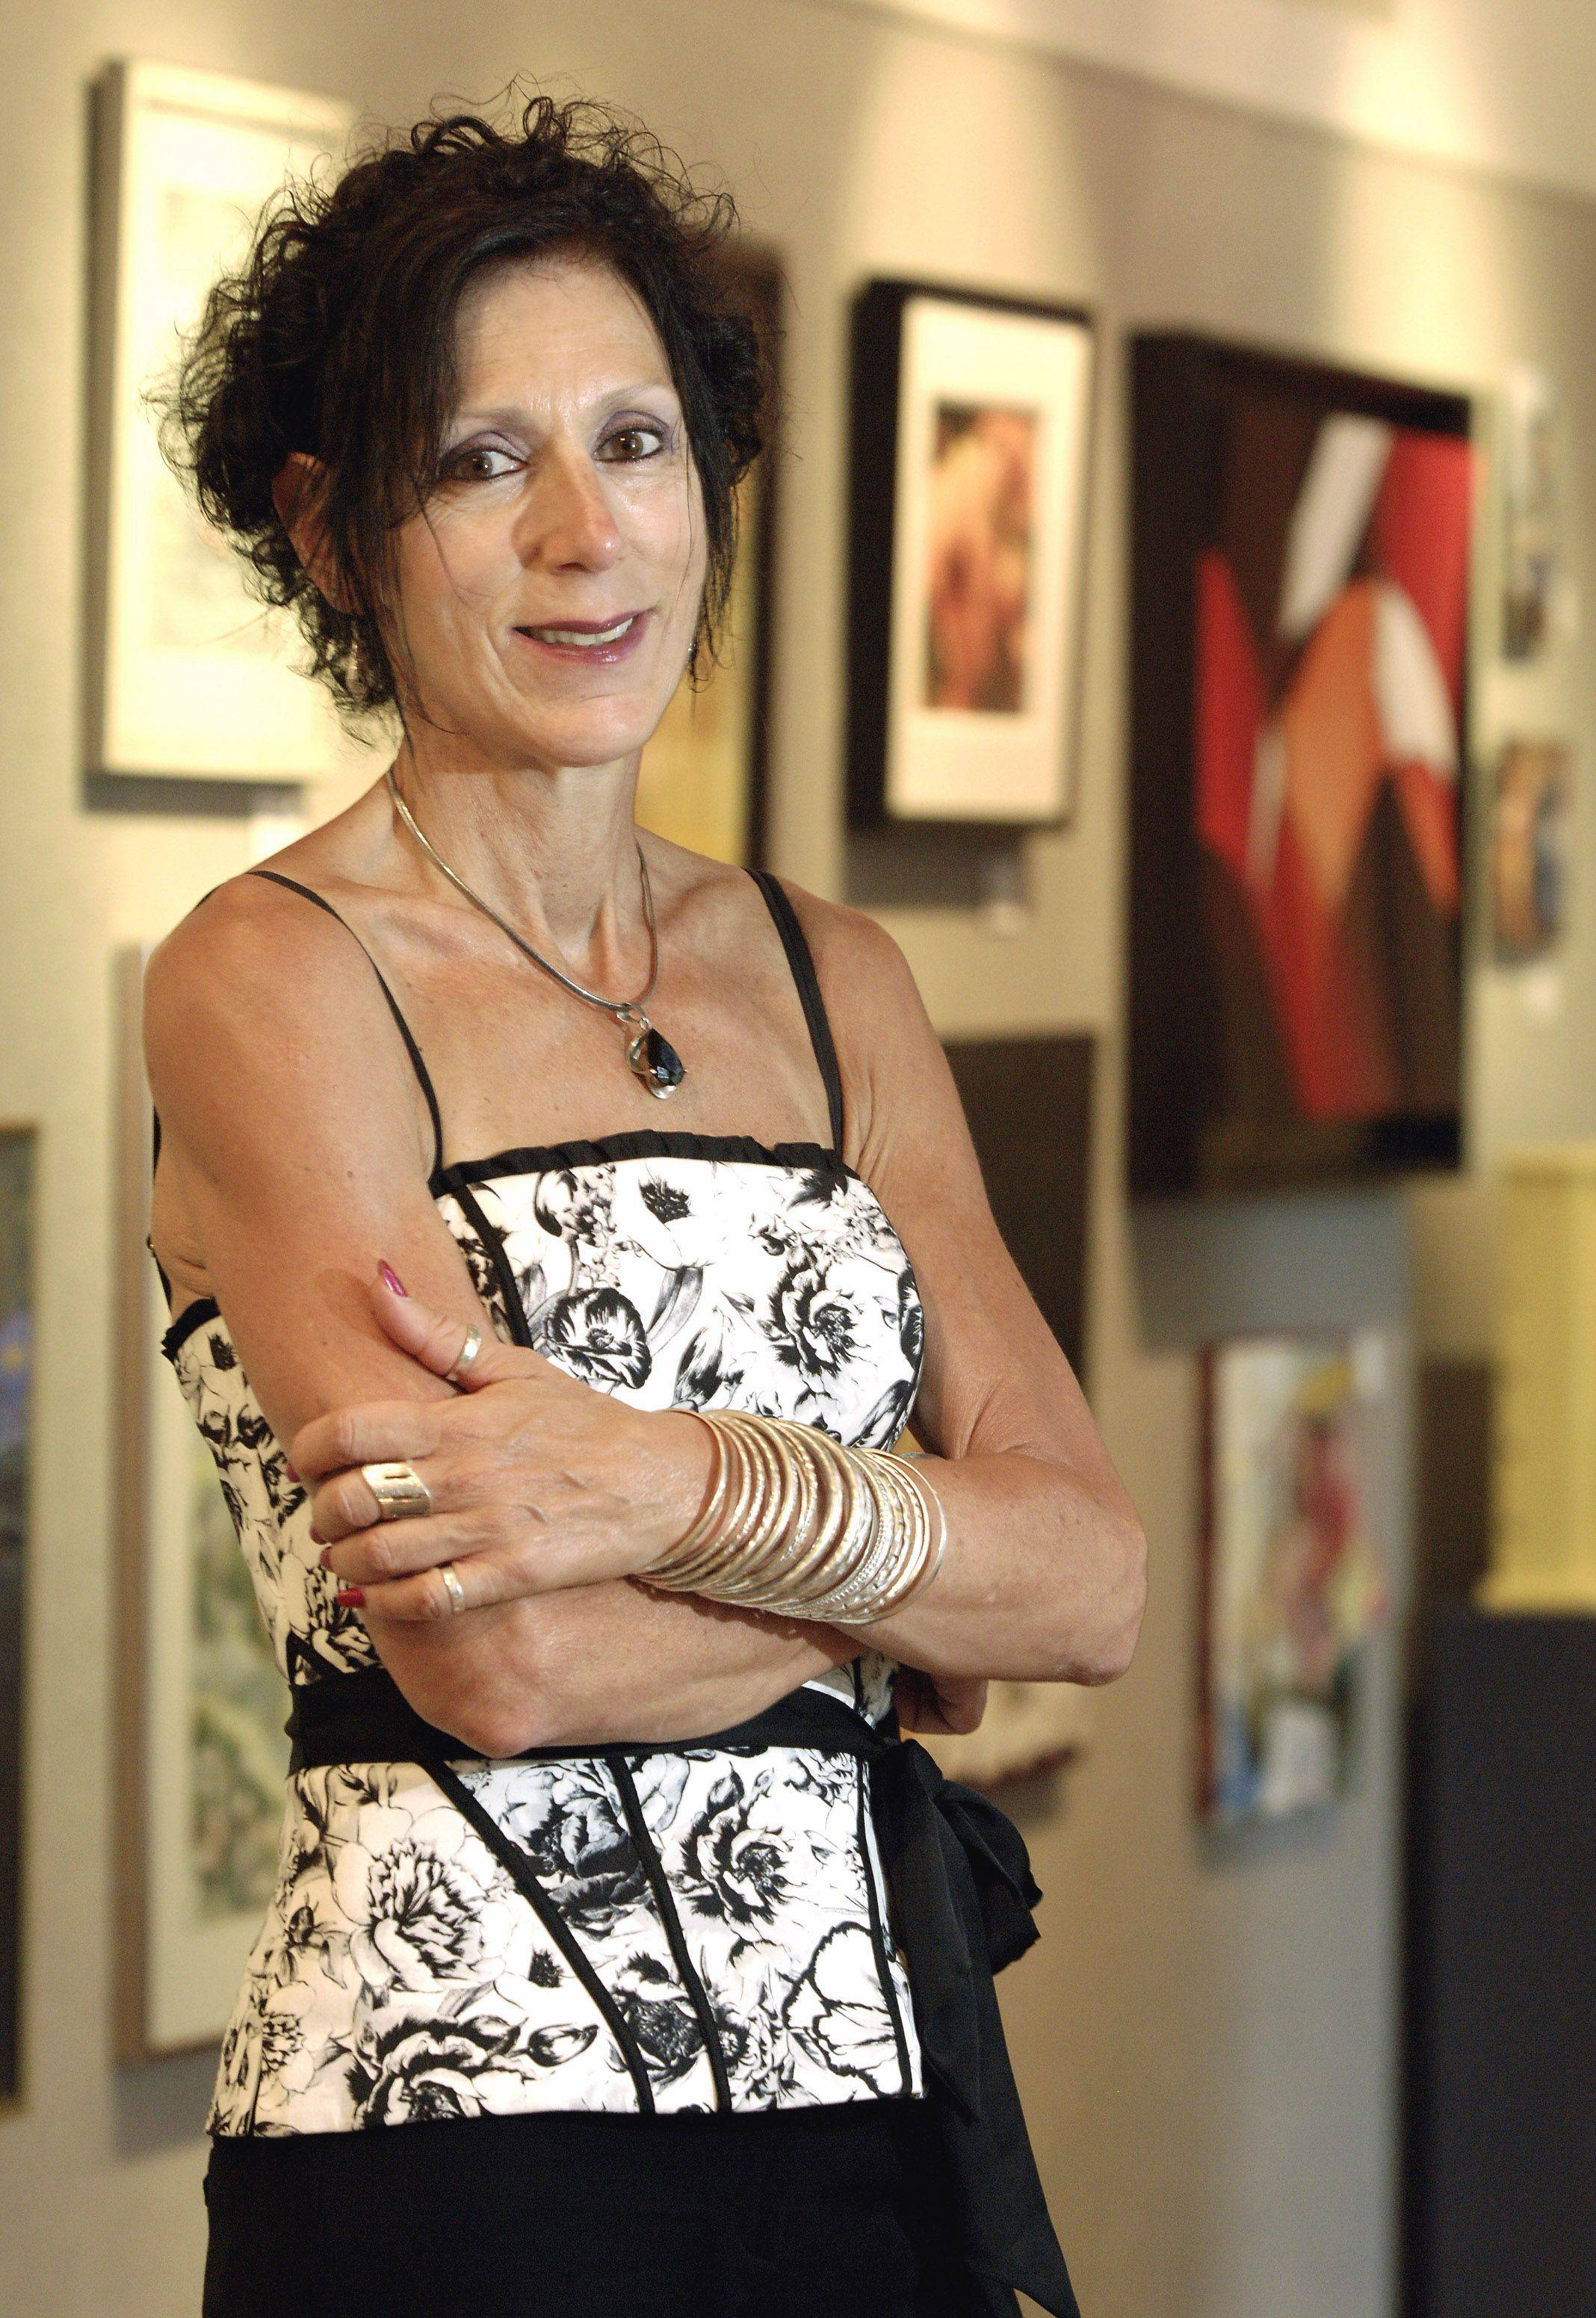 Deborah L. Venezia has served as the executive director of the Naperville Art League since 2002. She also is the founder and executive director of the After Hours Film Society that meets in Downers Grove.